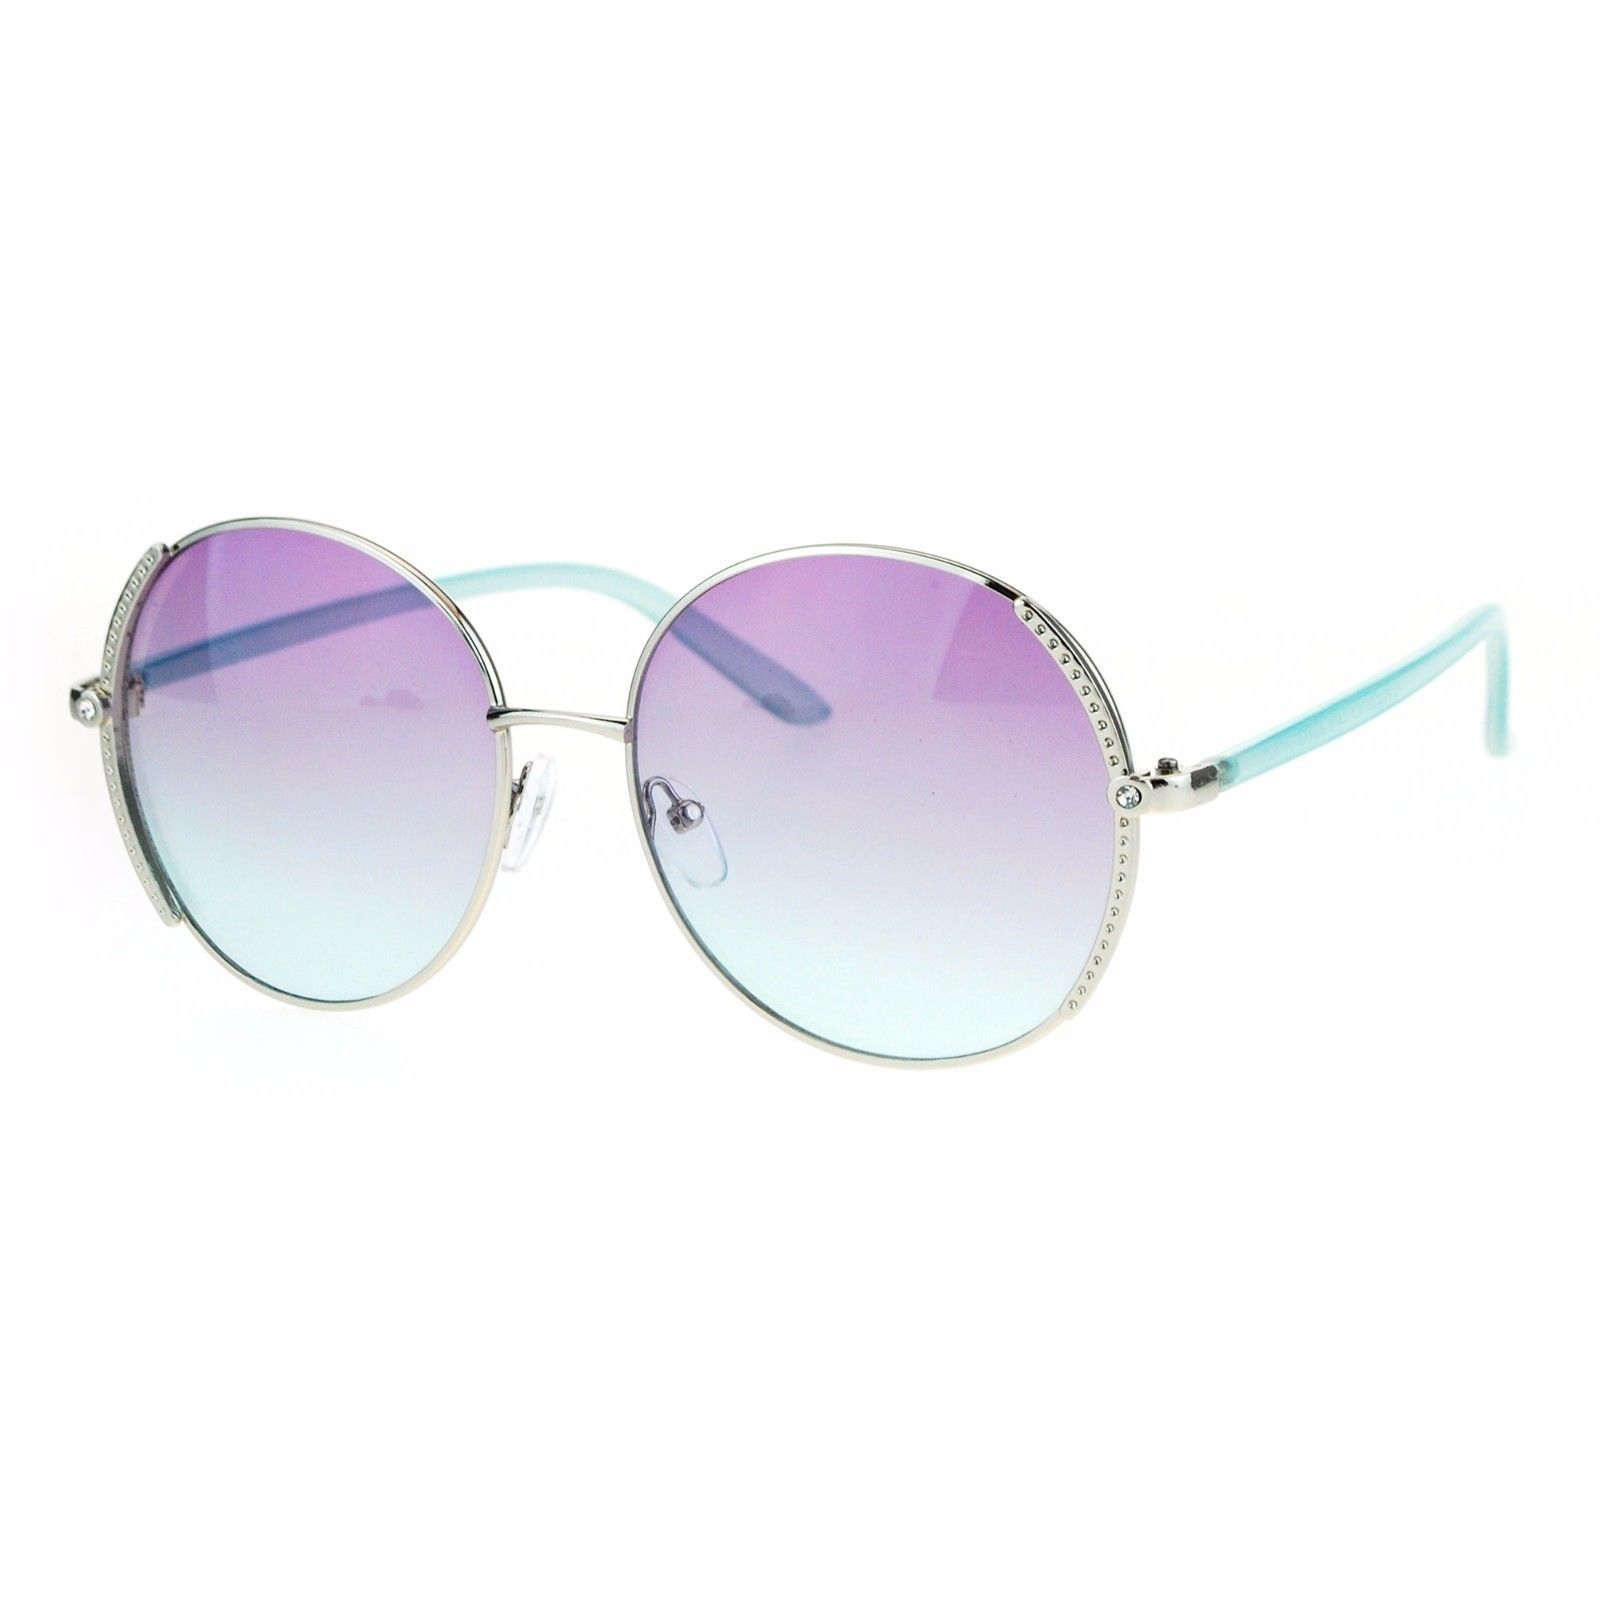 Womens Fashion Sunglasses Classy Stylish Round Frame UV 400